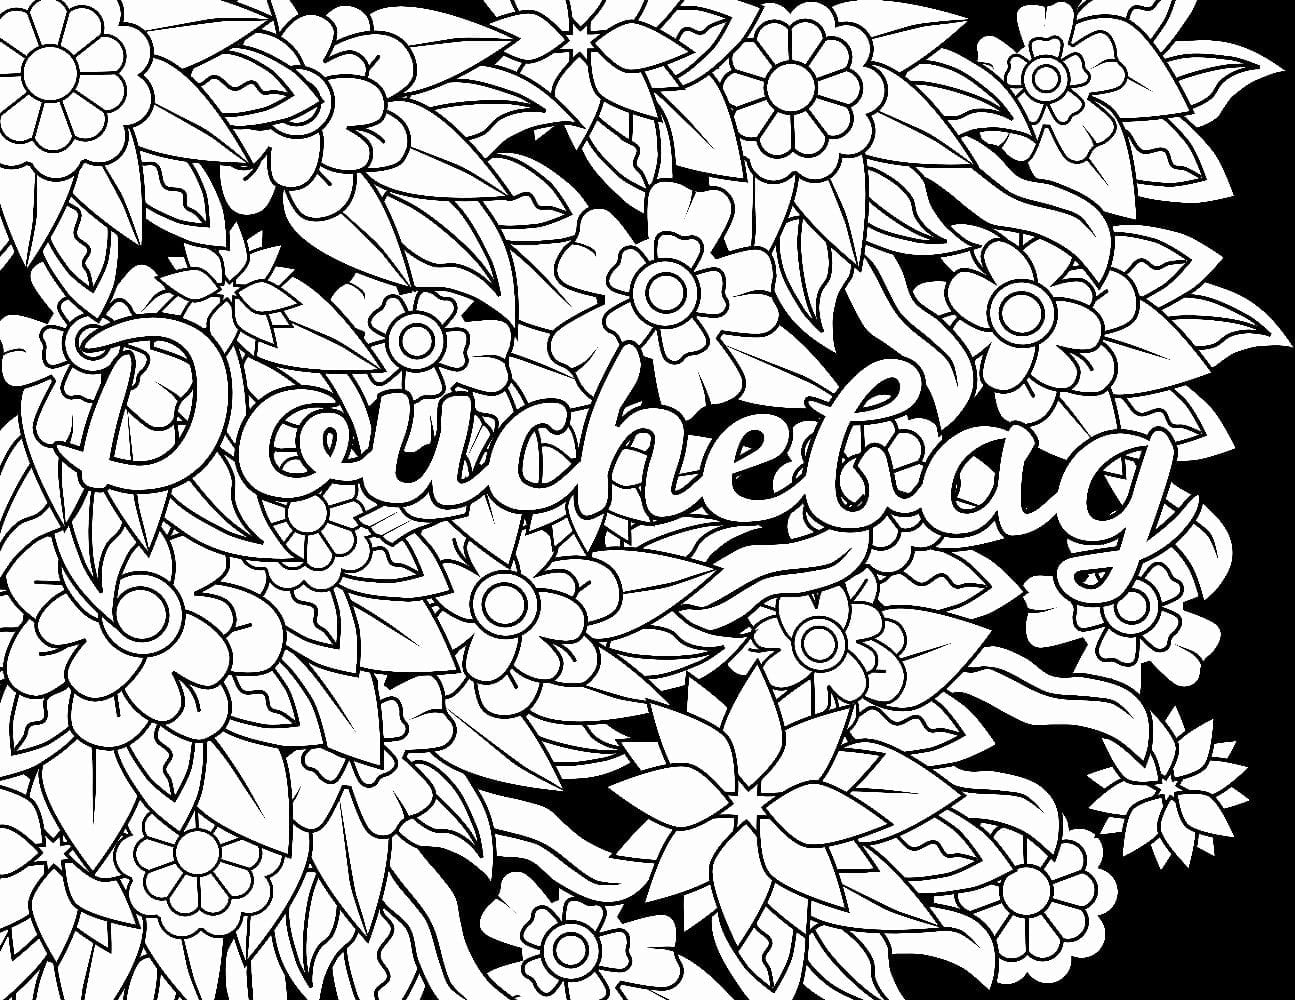 Free Coloring Book Images Awesome Coloring Pages For Adults Fresh